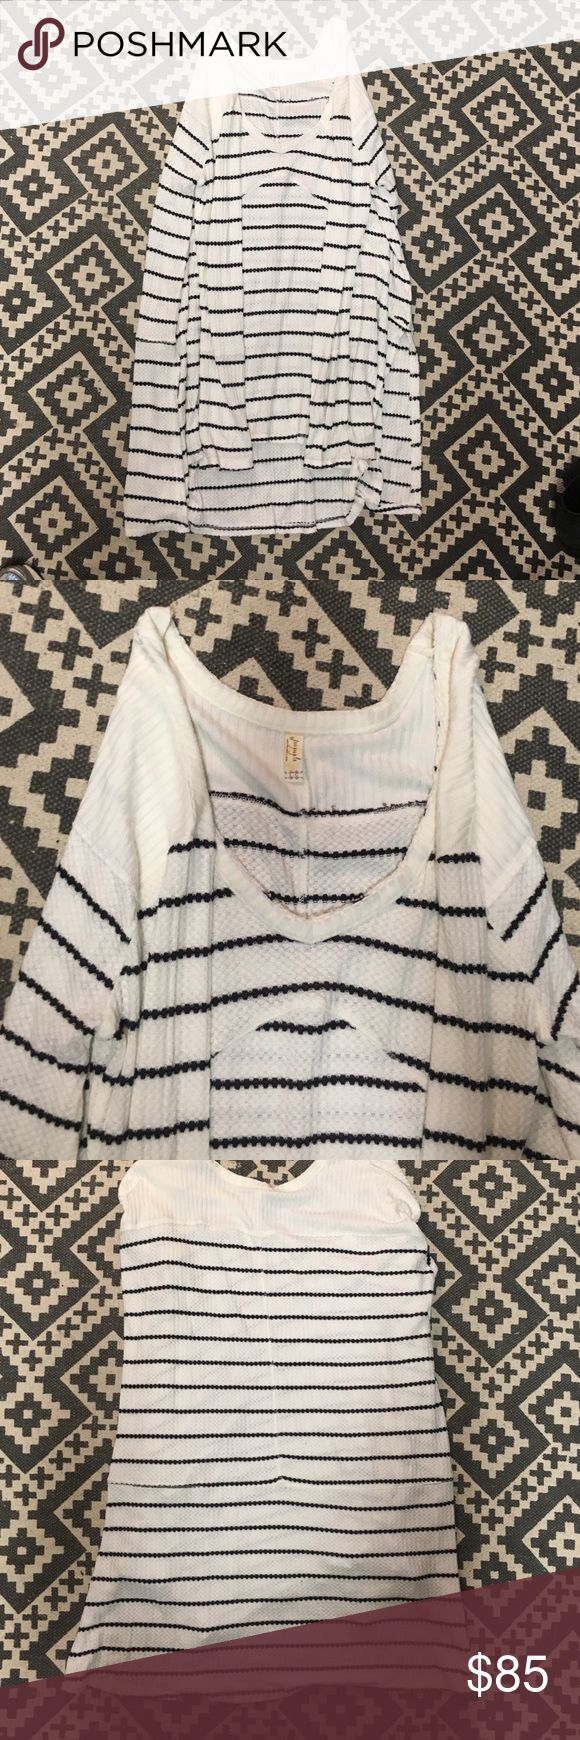 free people long sleeve shirt / tunic never before worn (brand new) free people black and white striped shirt / tunic. women's size large. great for layering or worn with jeans or leggings. just too big for me. Free People Tops Tunics